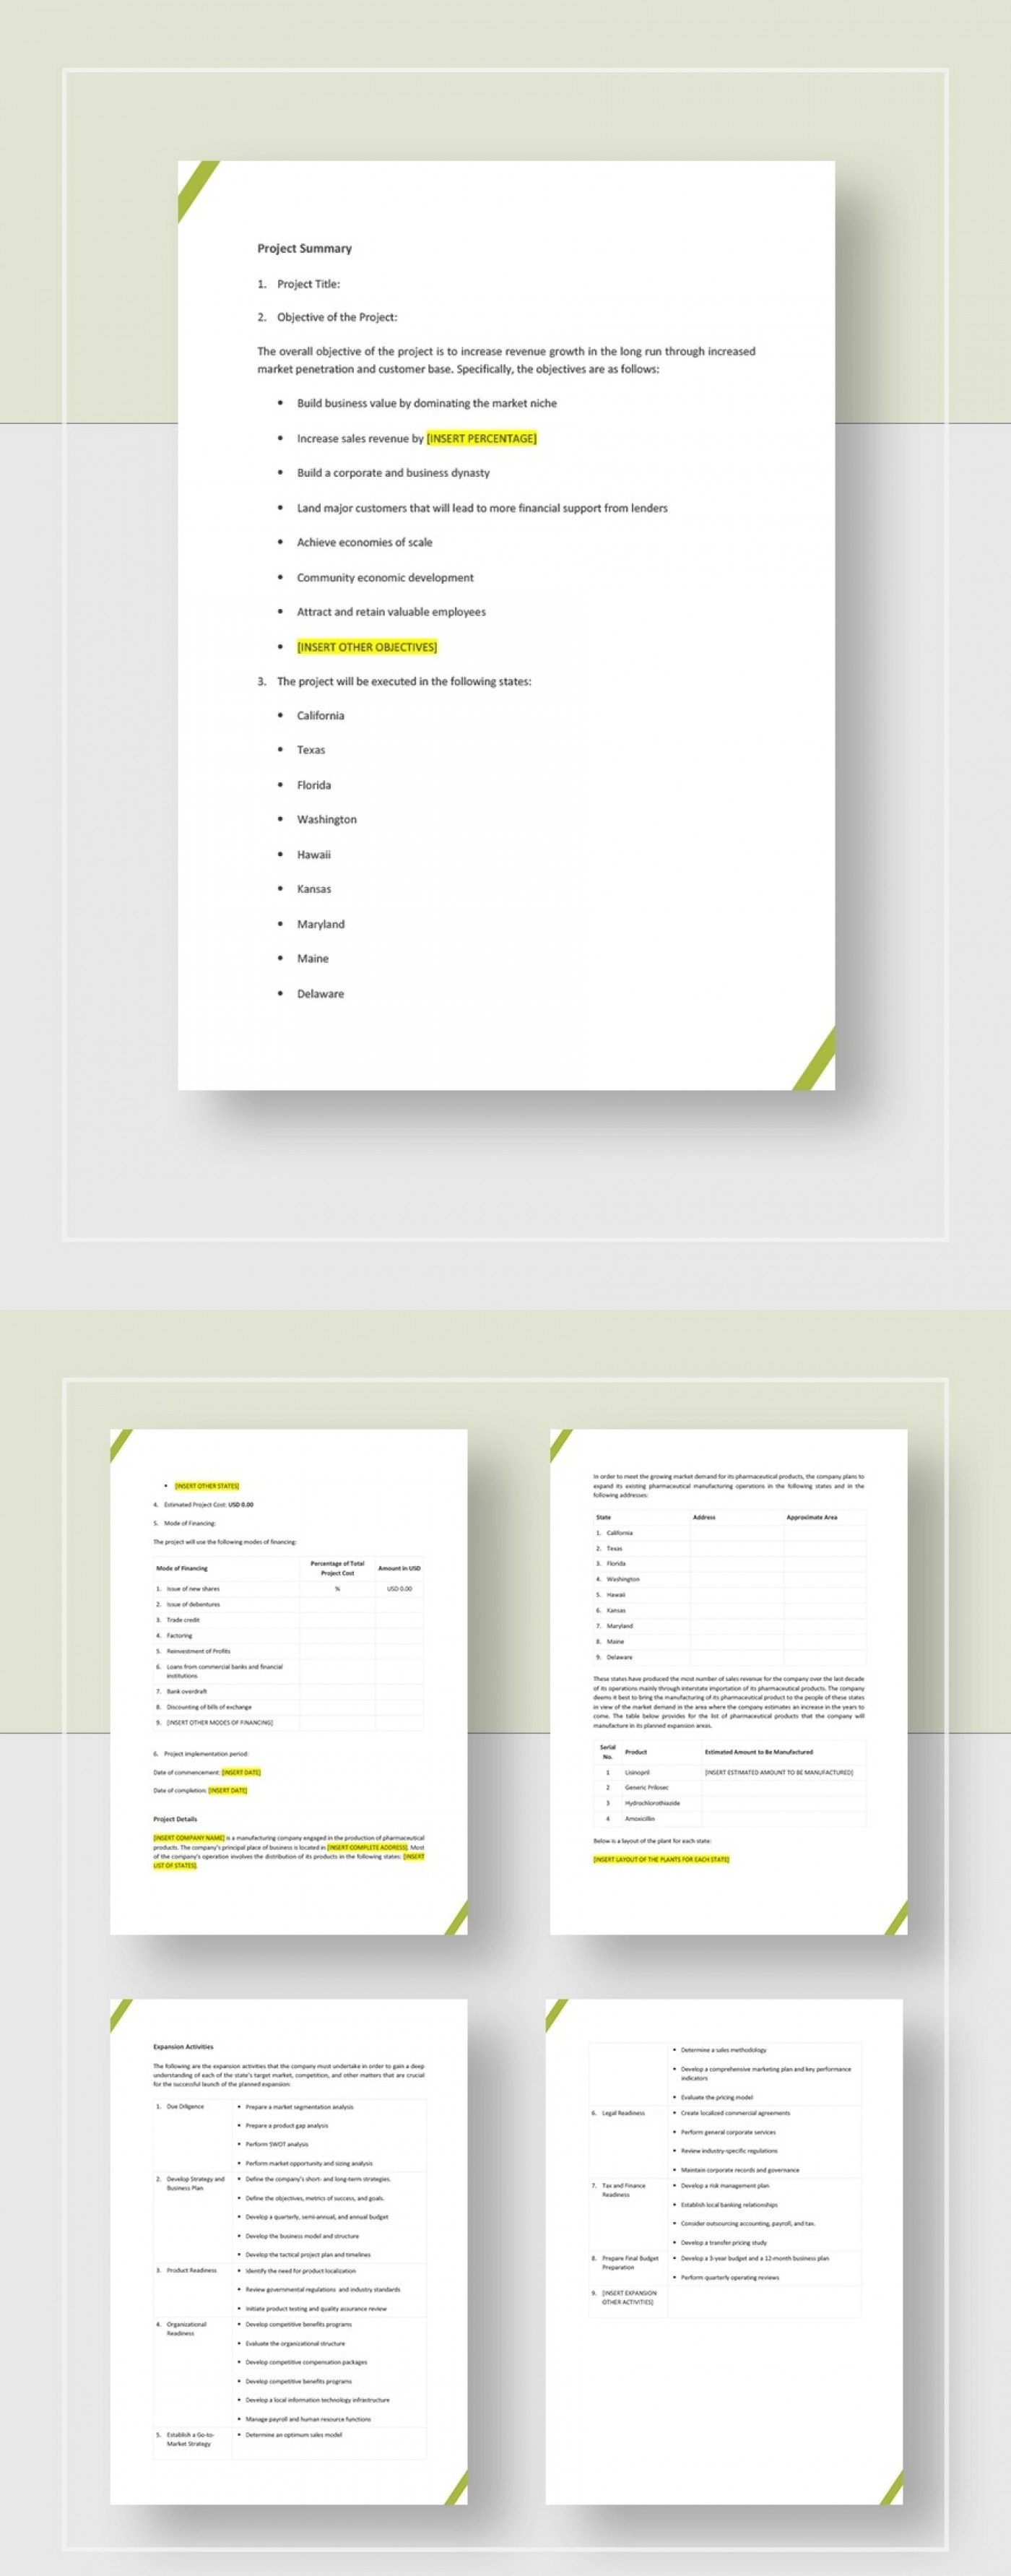 Development Project Proposal Template Jpg  Web Design & Powerpoint Sample1400